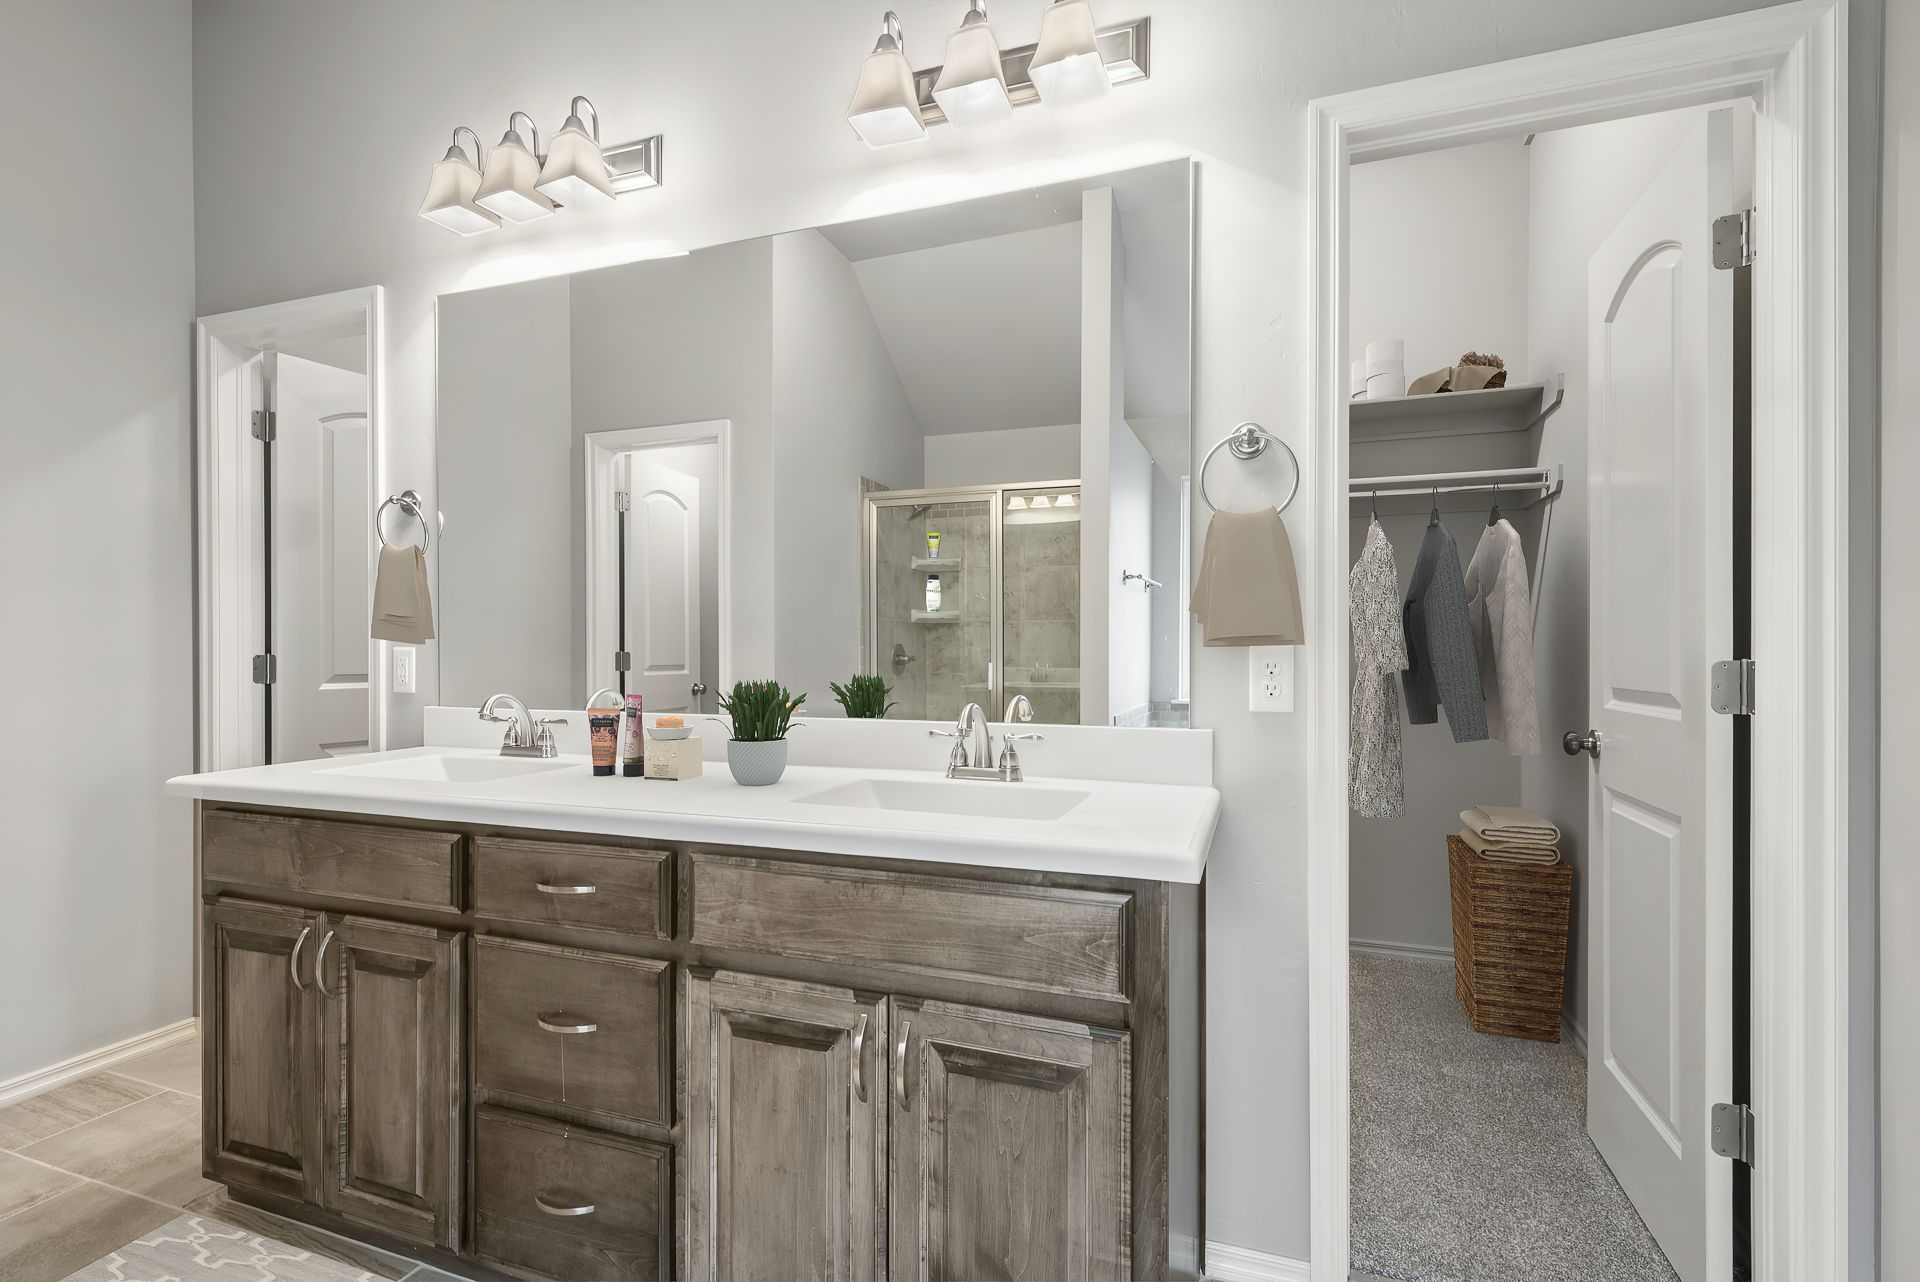 Bathroom featured in the Langley 3-Car By Ideal Homes in Oklahoma City, OK